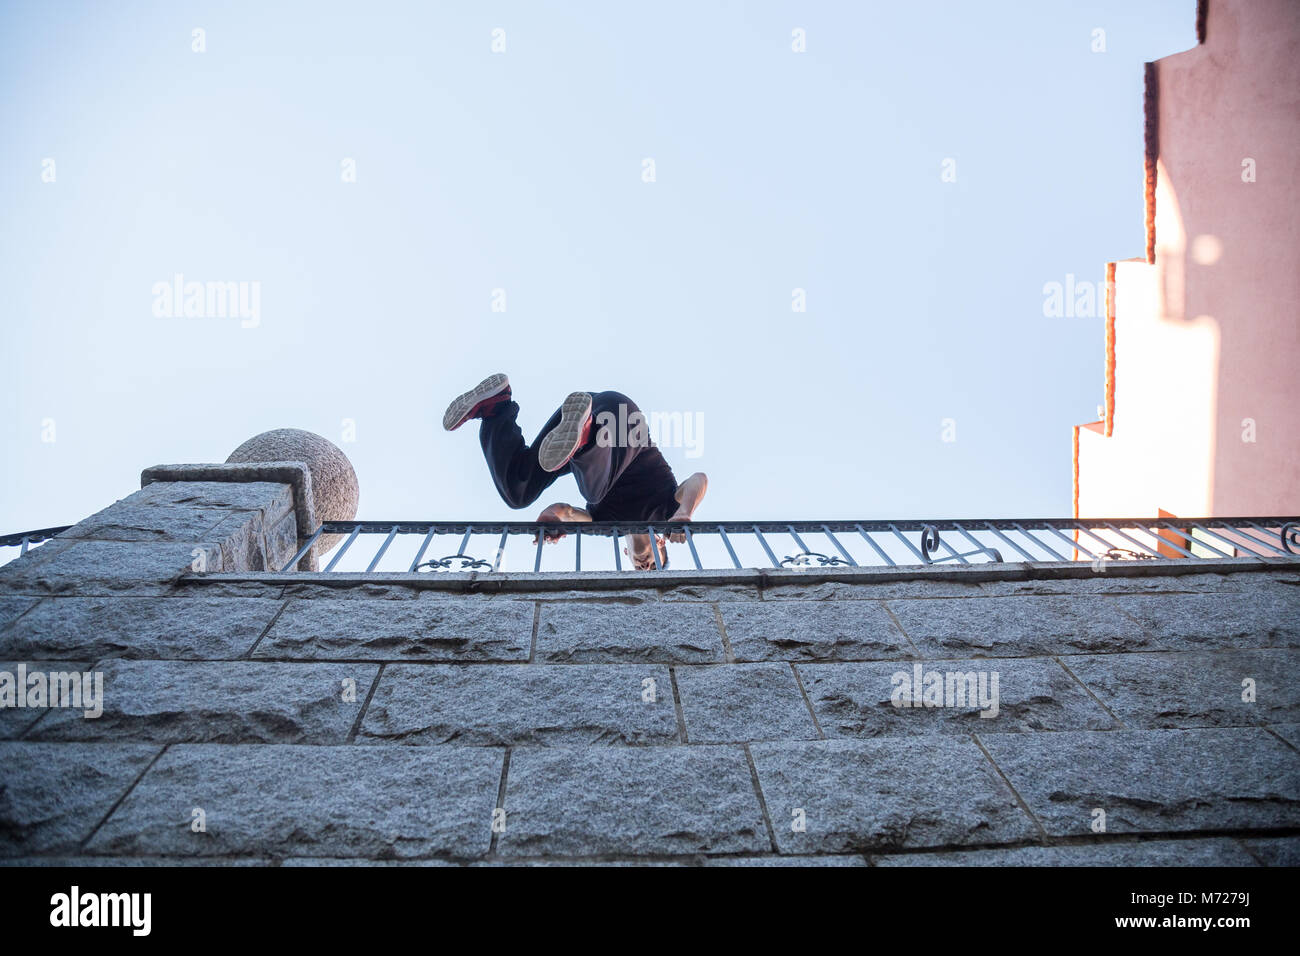 Young man hanging on wall and trying to climb up while doing parkour. - Stock Image